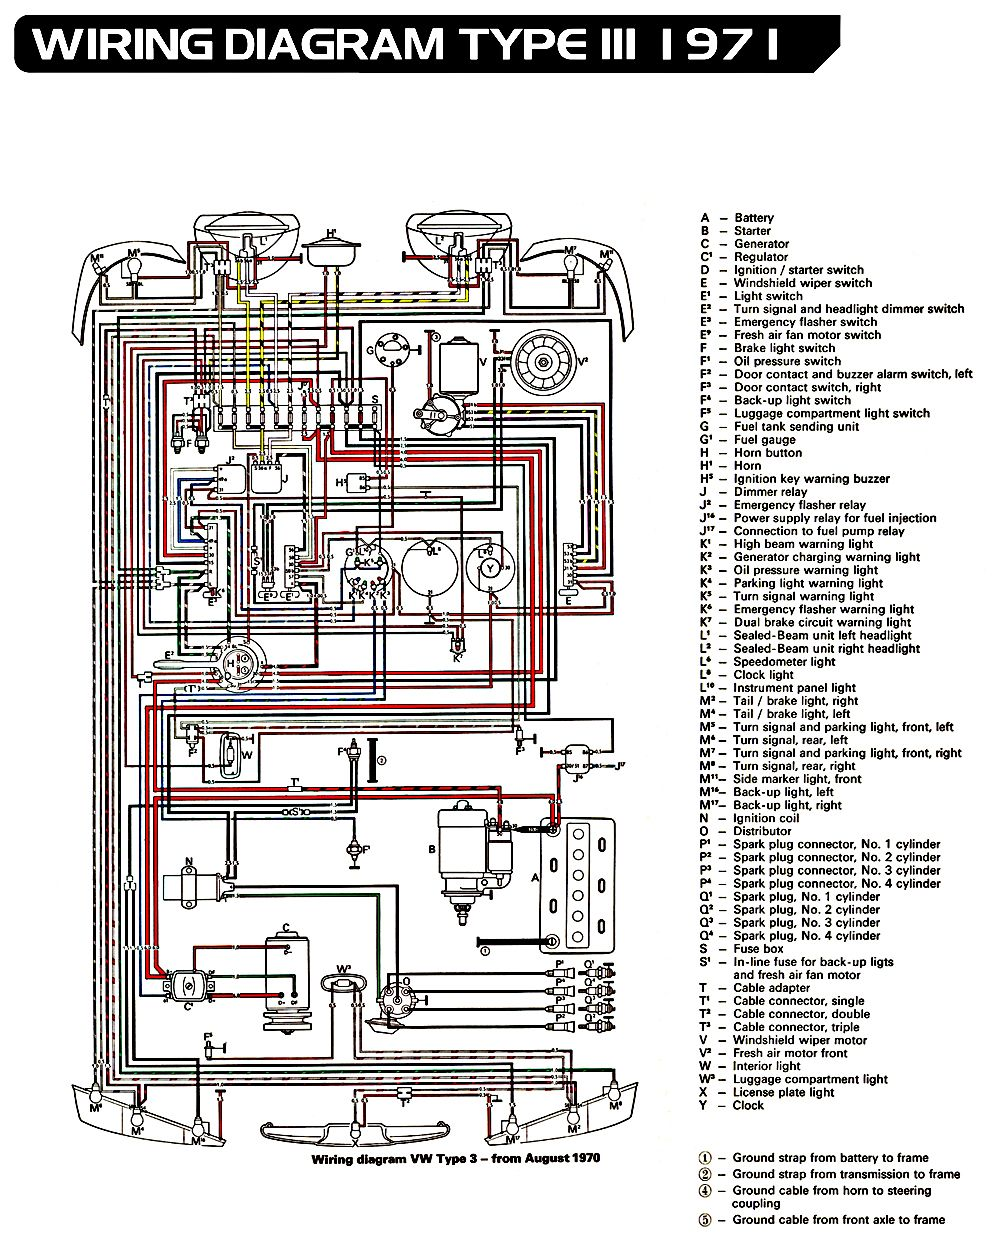 Type 3 Wiring Diagram Reinvent Your 72 Volkswagen Beetle 1971 Vw So Simple Compared To A Modern Ecu Rh Pinterest Com